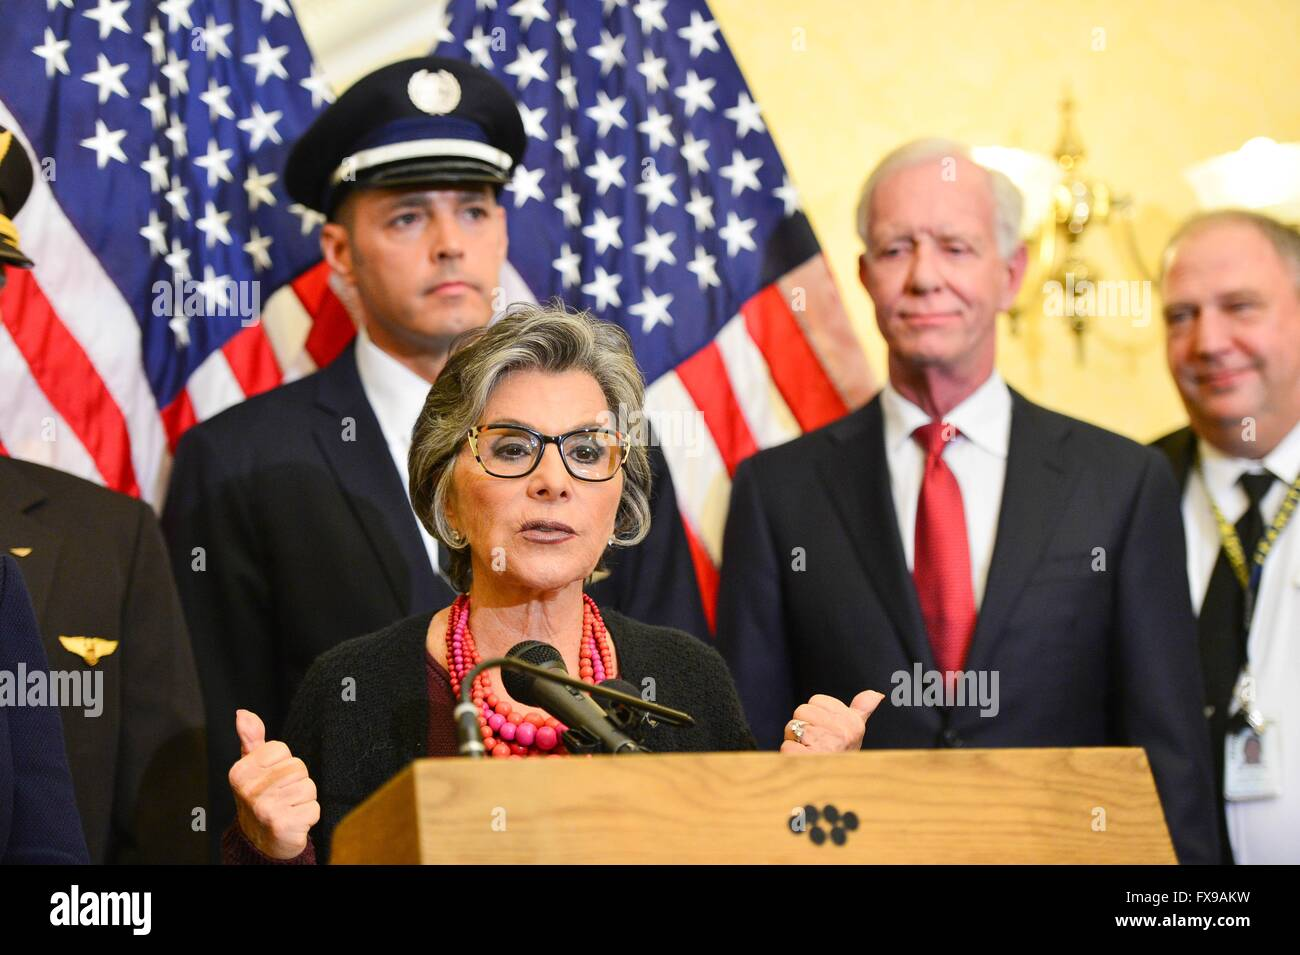 U.S Senator Barbara Boxer of California during a news conference promoting the Safe Skies Act as an amendment to - Stock Image